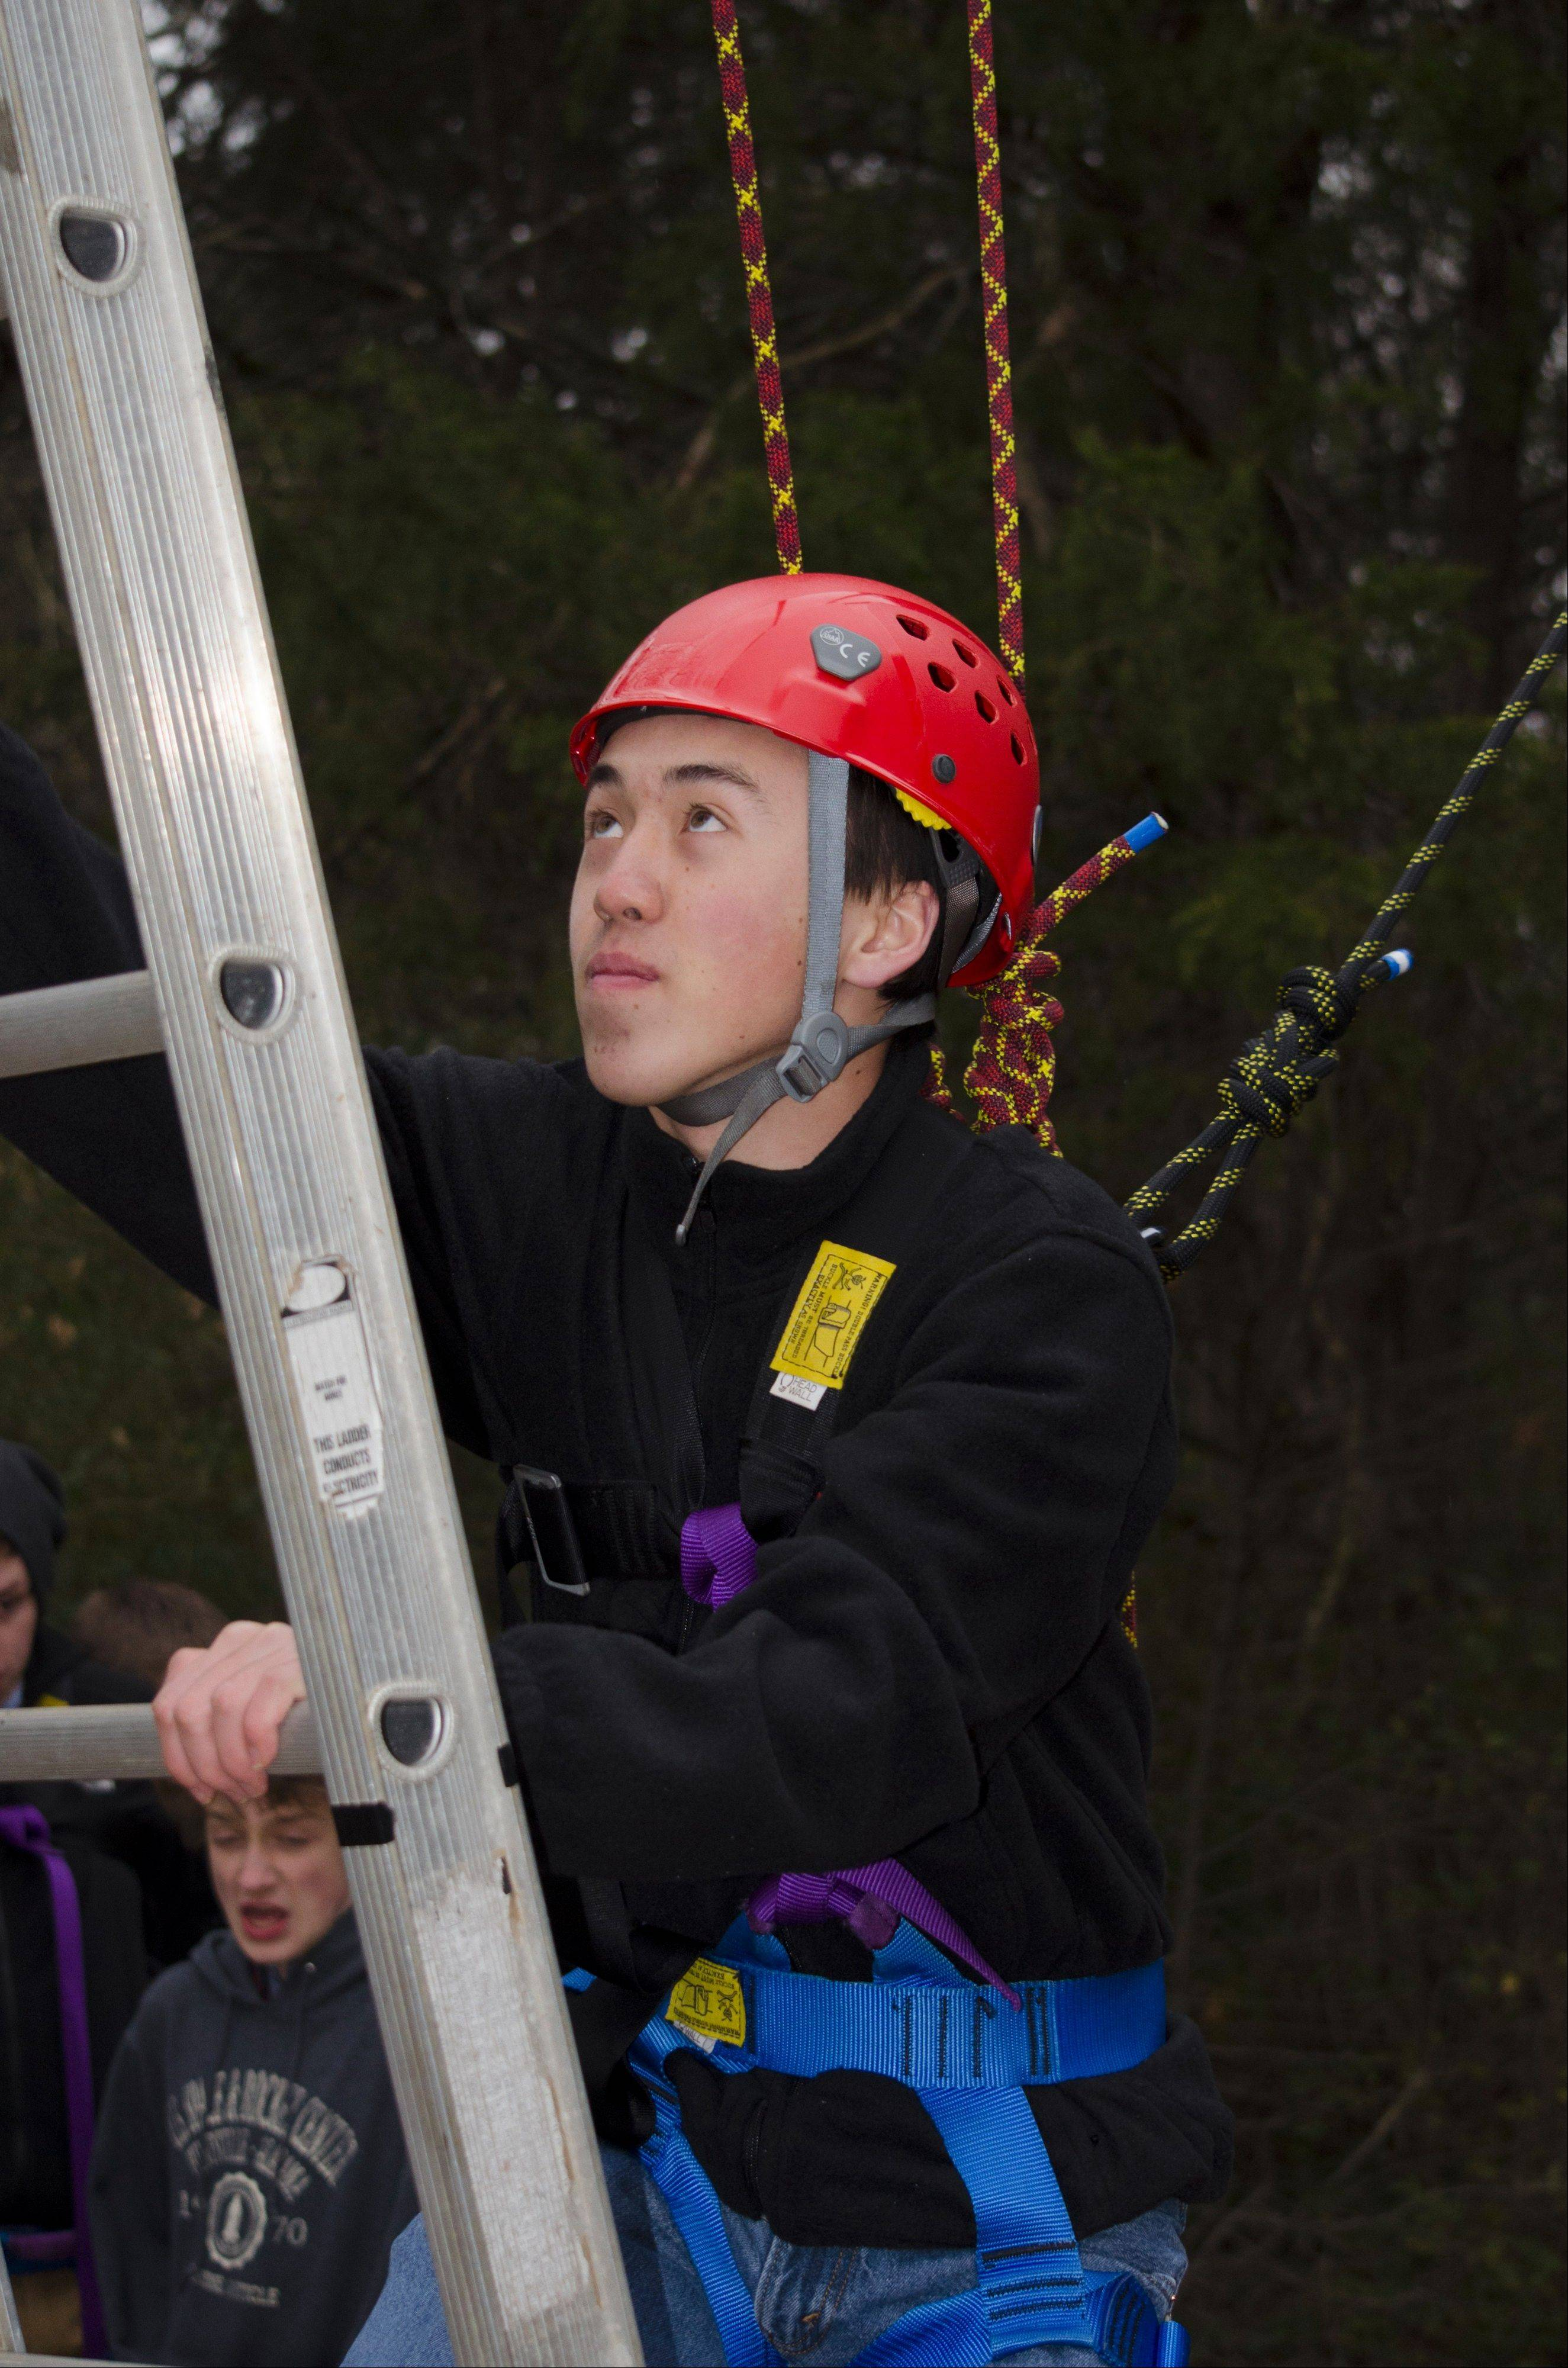 Patrick Grady of Mundelein climbs the 32-foot pamper pole at the Honeywell Leadership Challenge.